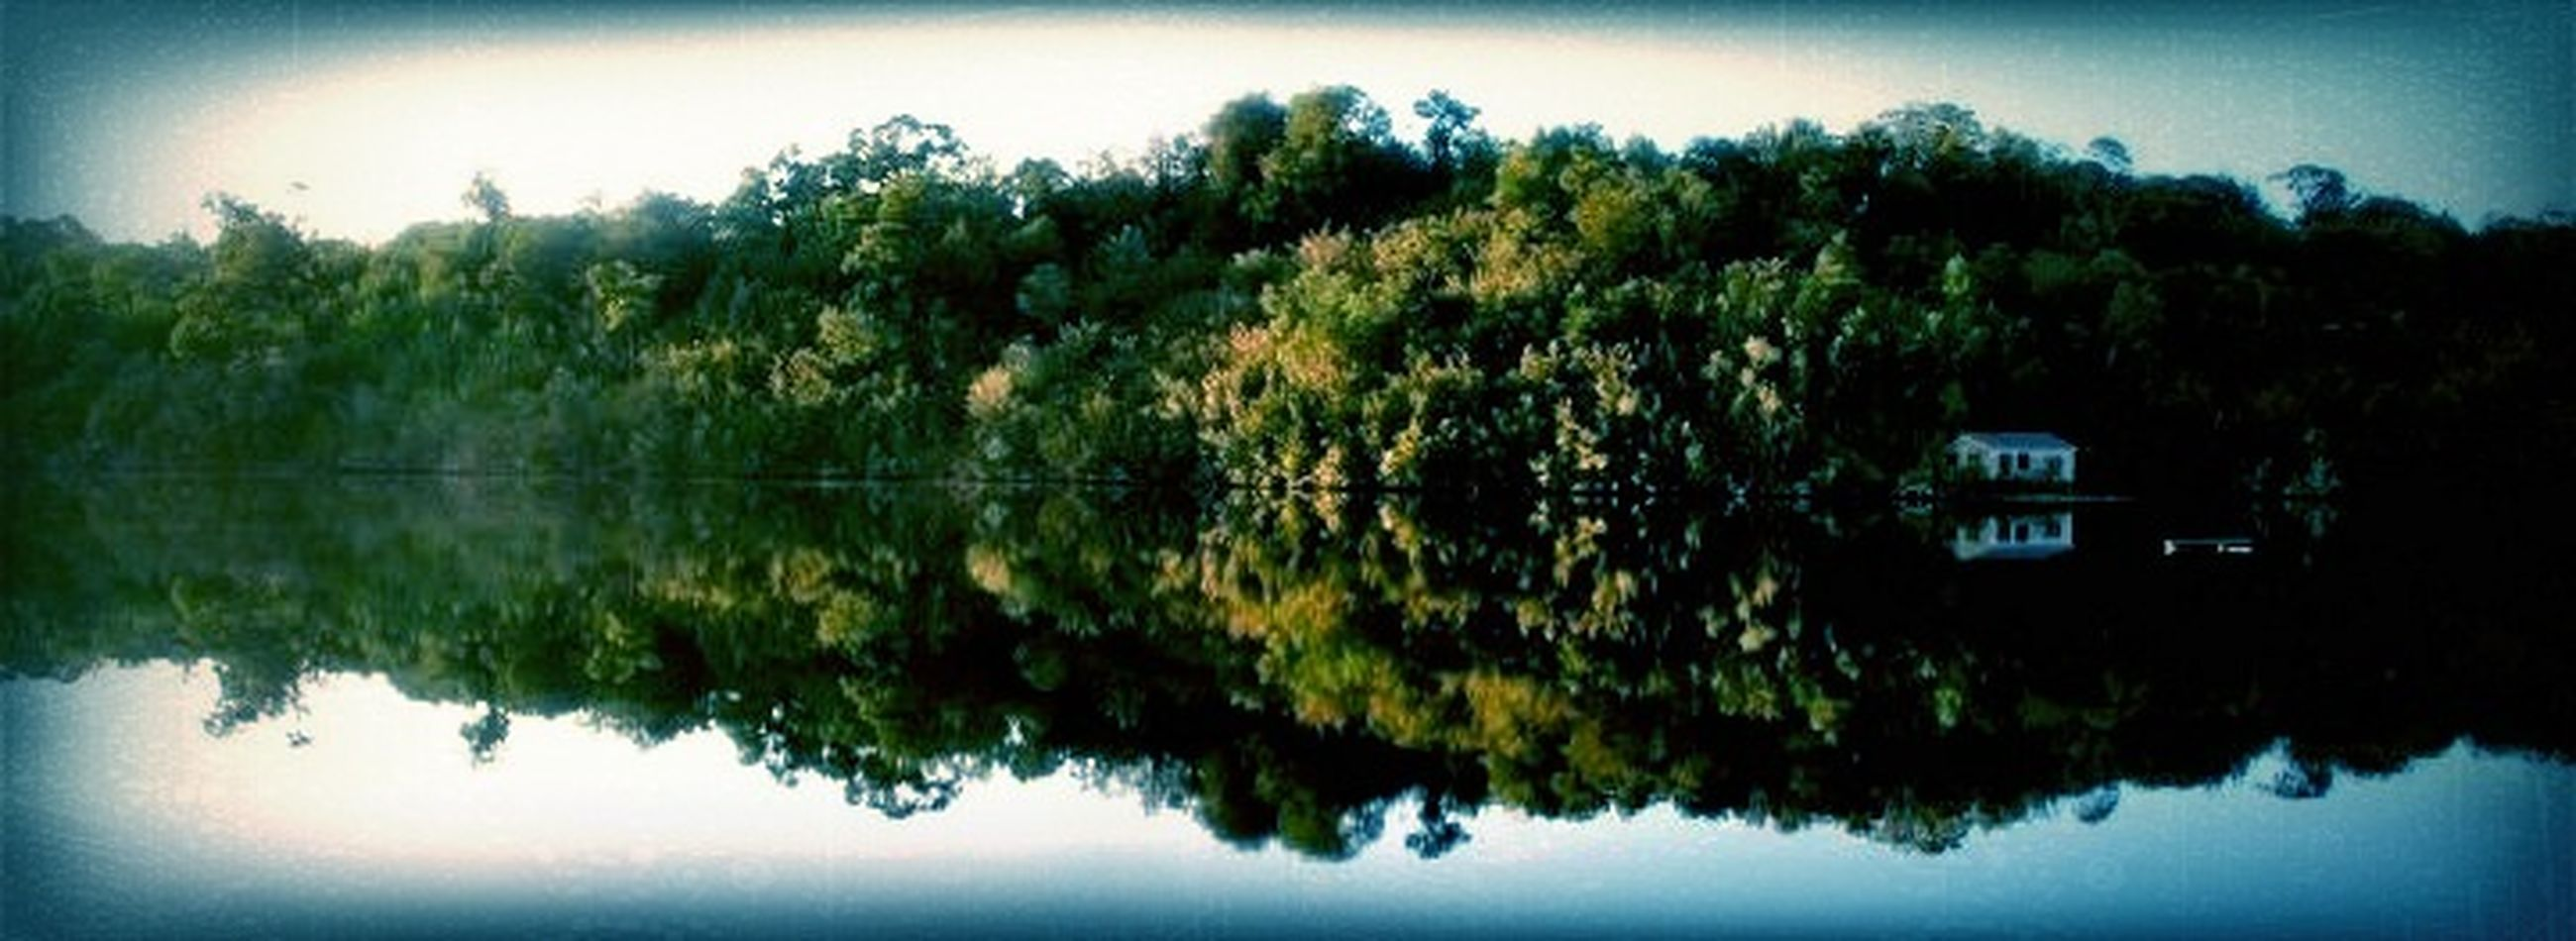 reflection, water, lake, tranquil scene, tranquility, tree, scenics, waterfront, sky, beauty in nature, standing water, nature, calm, idyllic, auto post production filter, growth, outdoors, no people, non-urban scene, blue